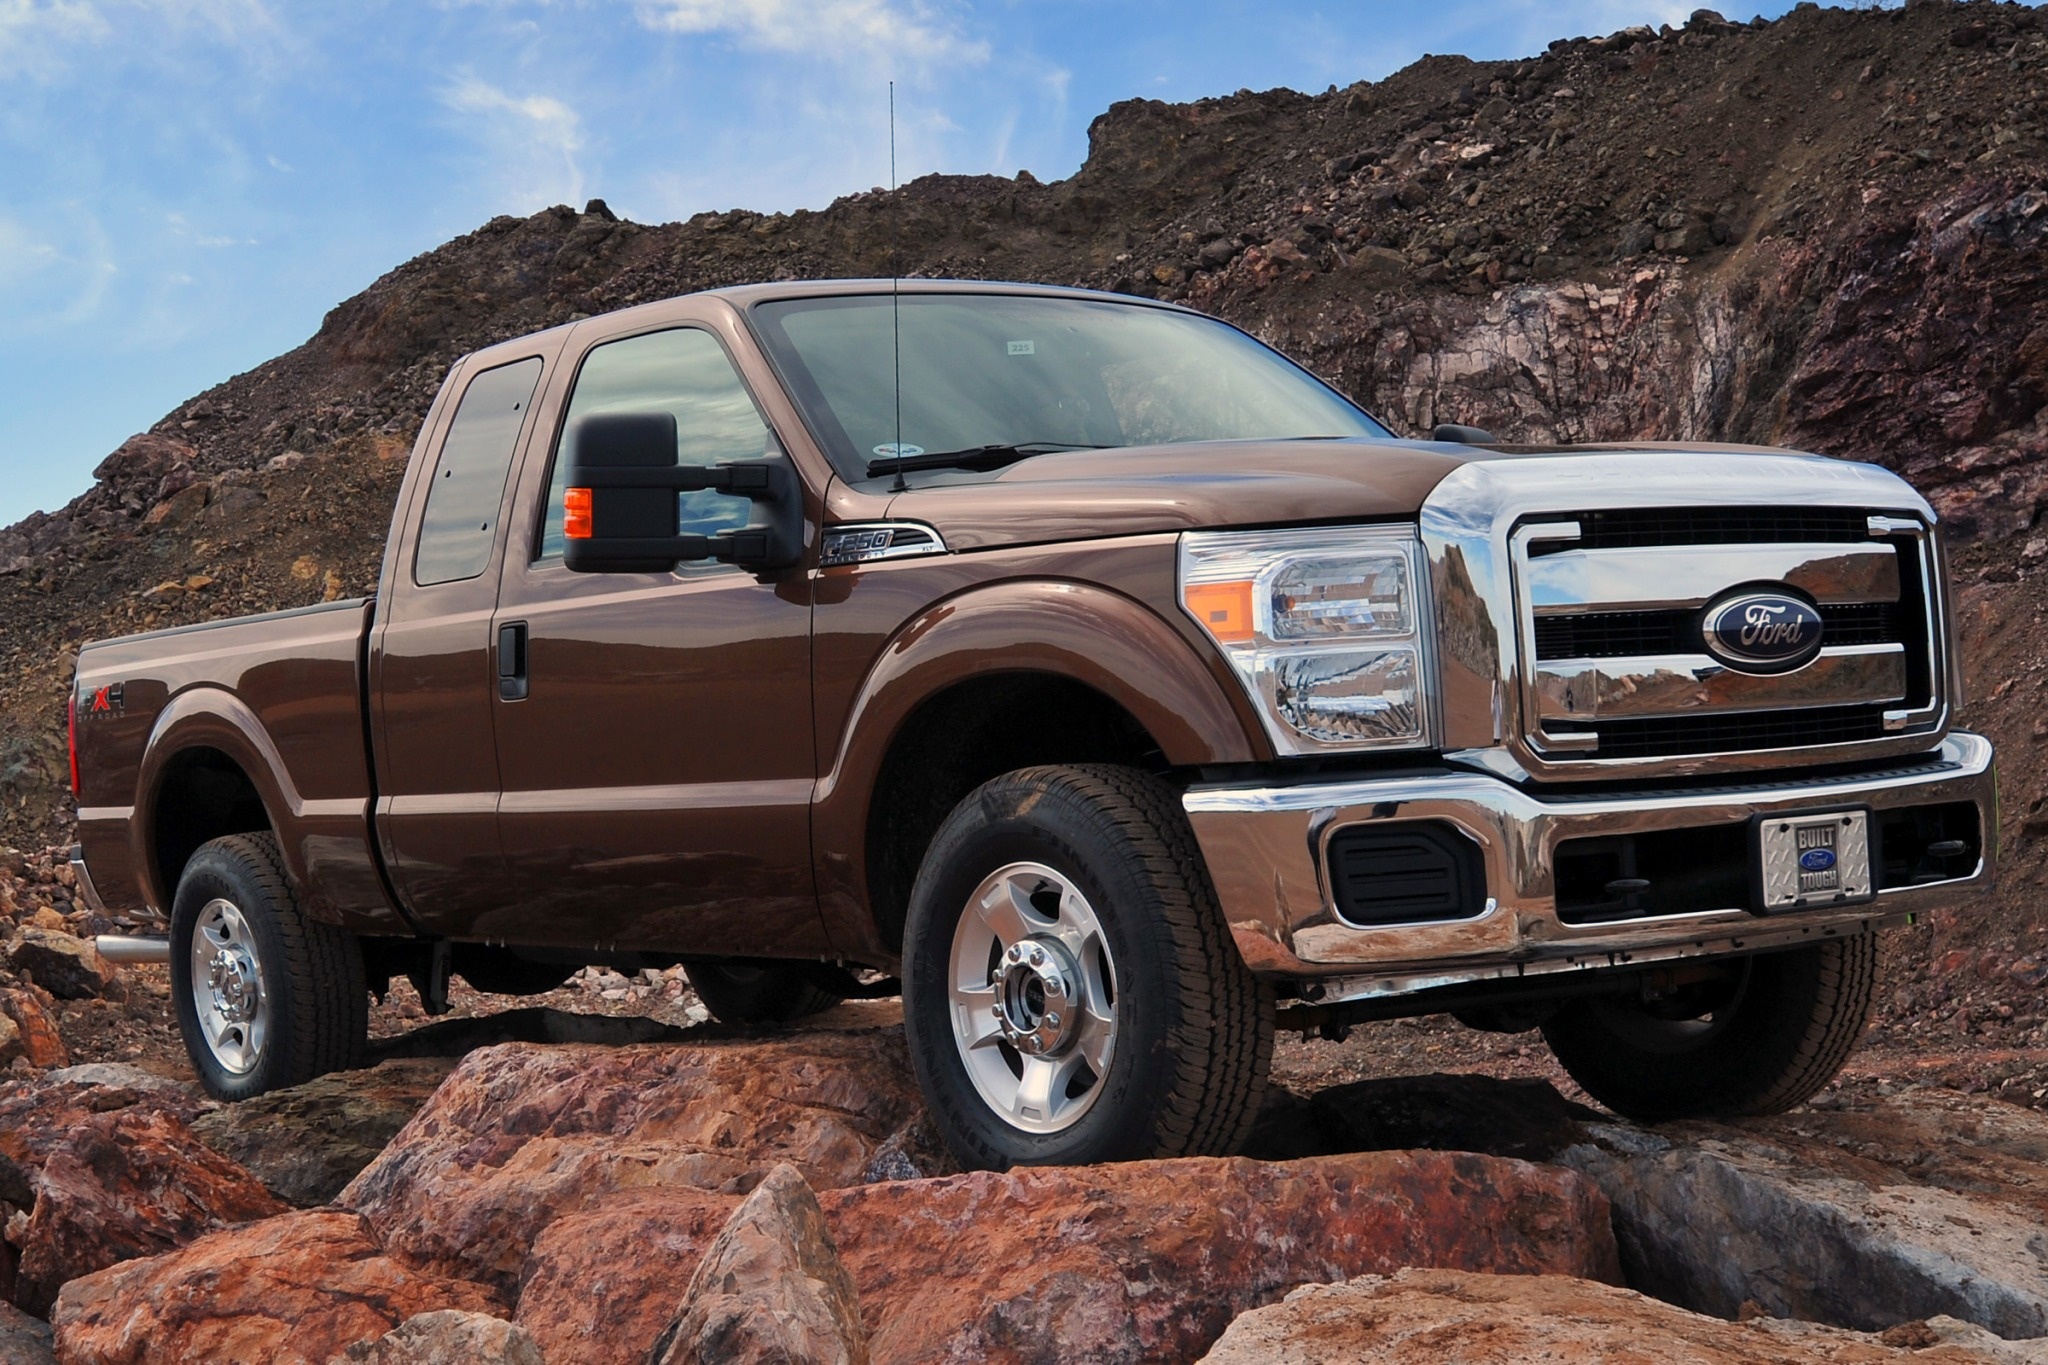 2014 Ford F-250 Super Dut interior #3